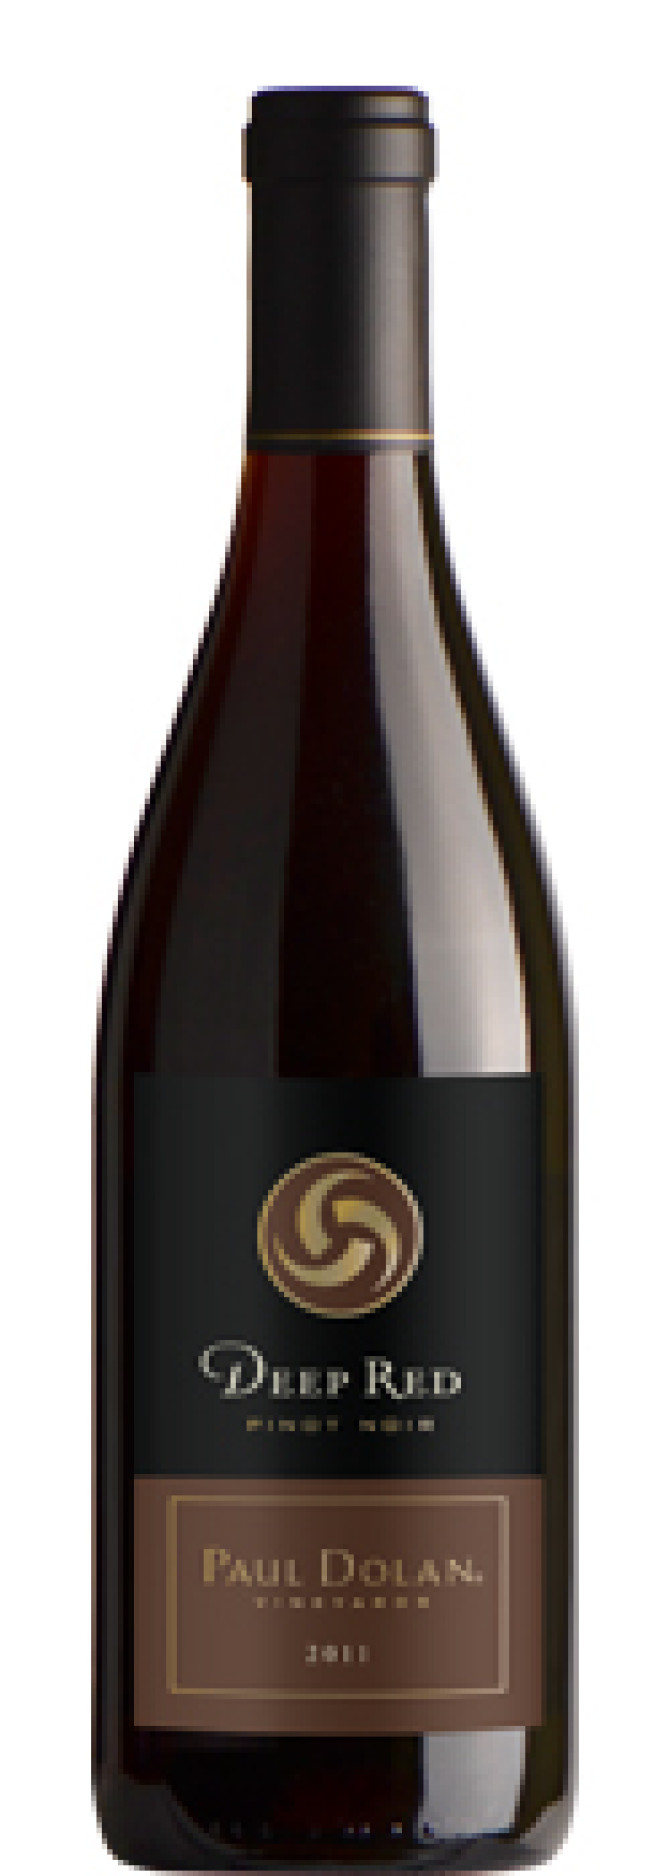 paul-dolan-vineyards-deep-red-pinot-noir-2011